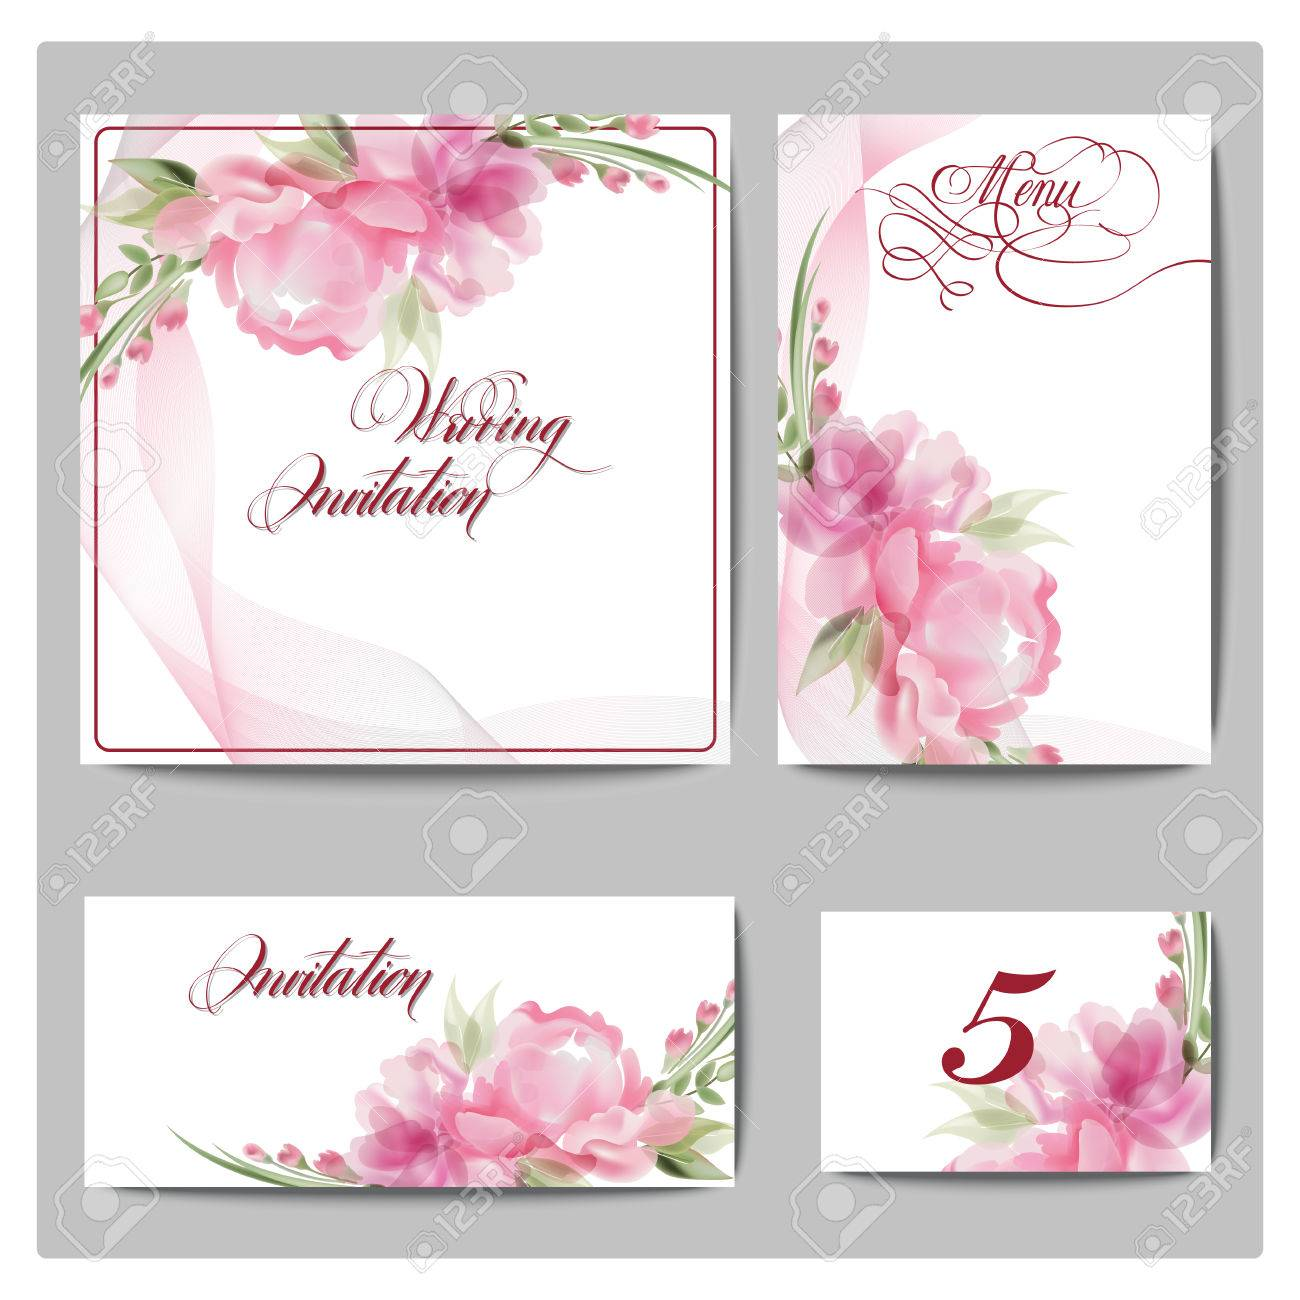 Wedding Invitation Cards With Blooming Flowers Use For Boarding